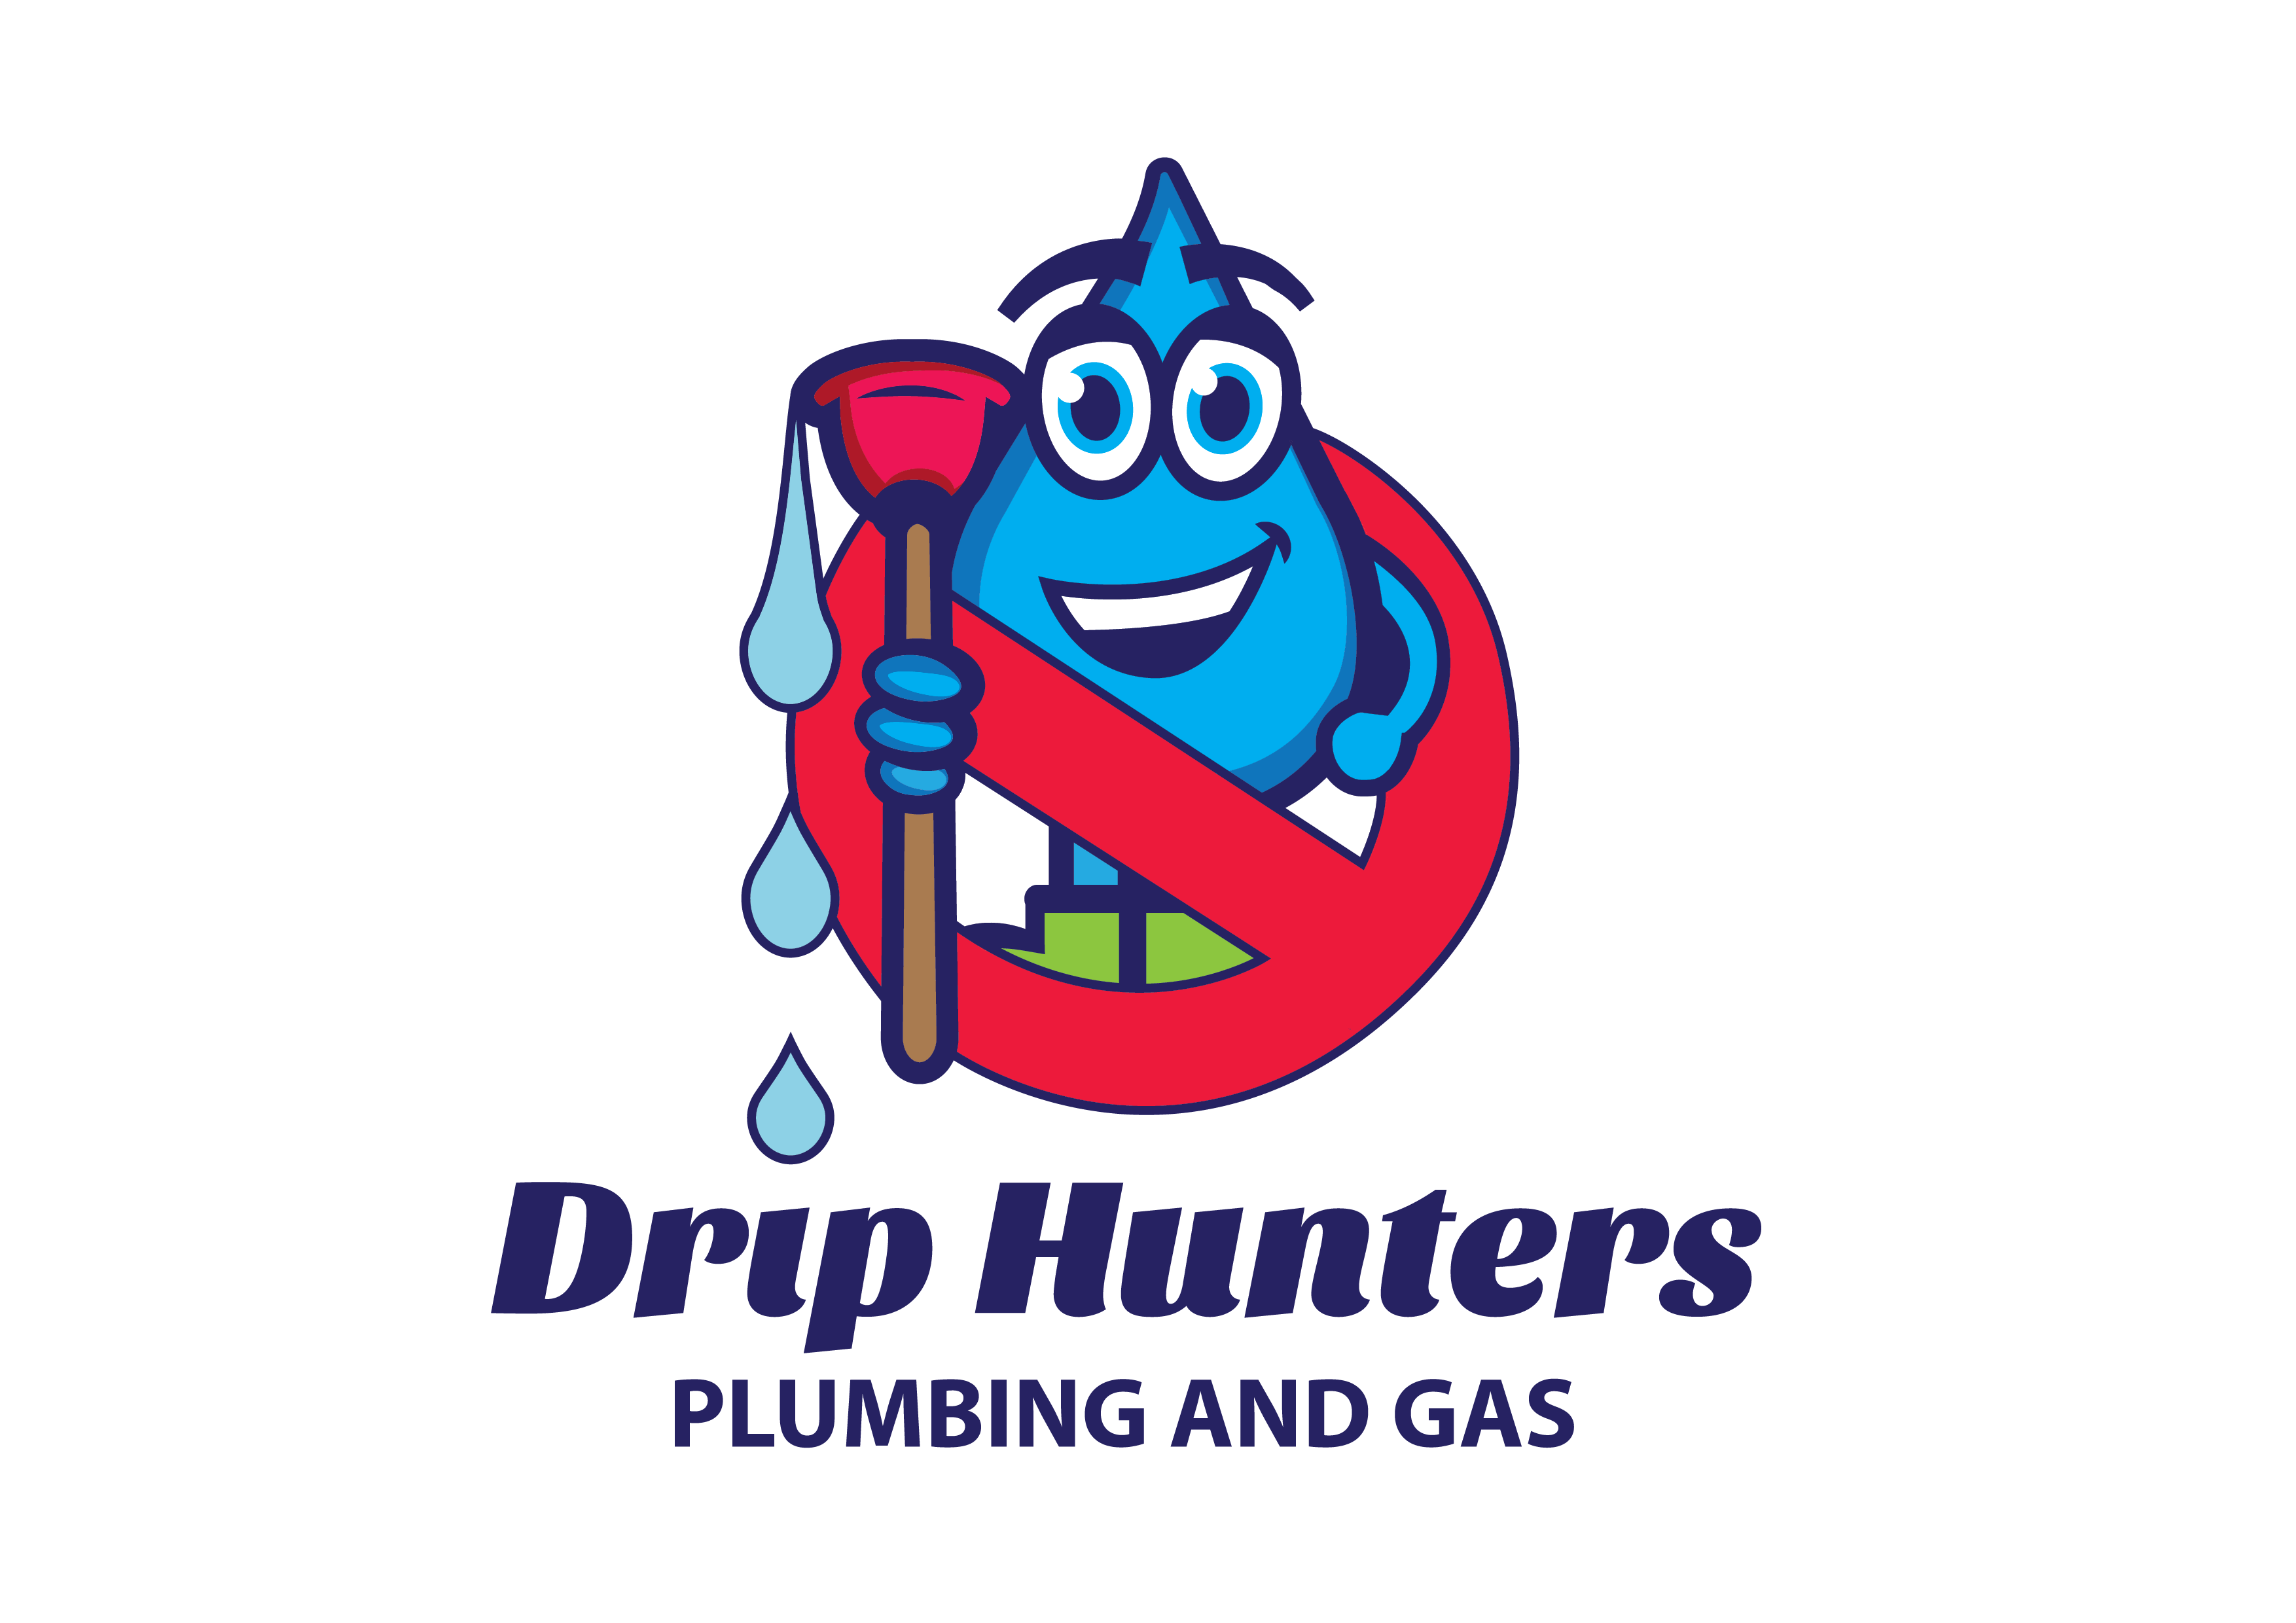 Drip hunters for plumbing and gas services in the Rockingham area